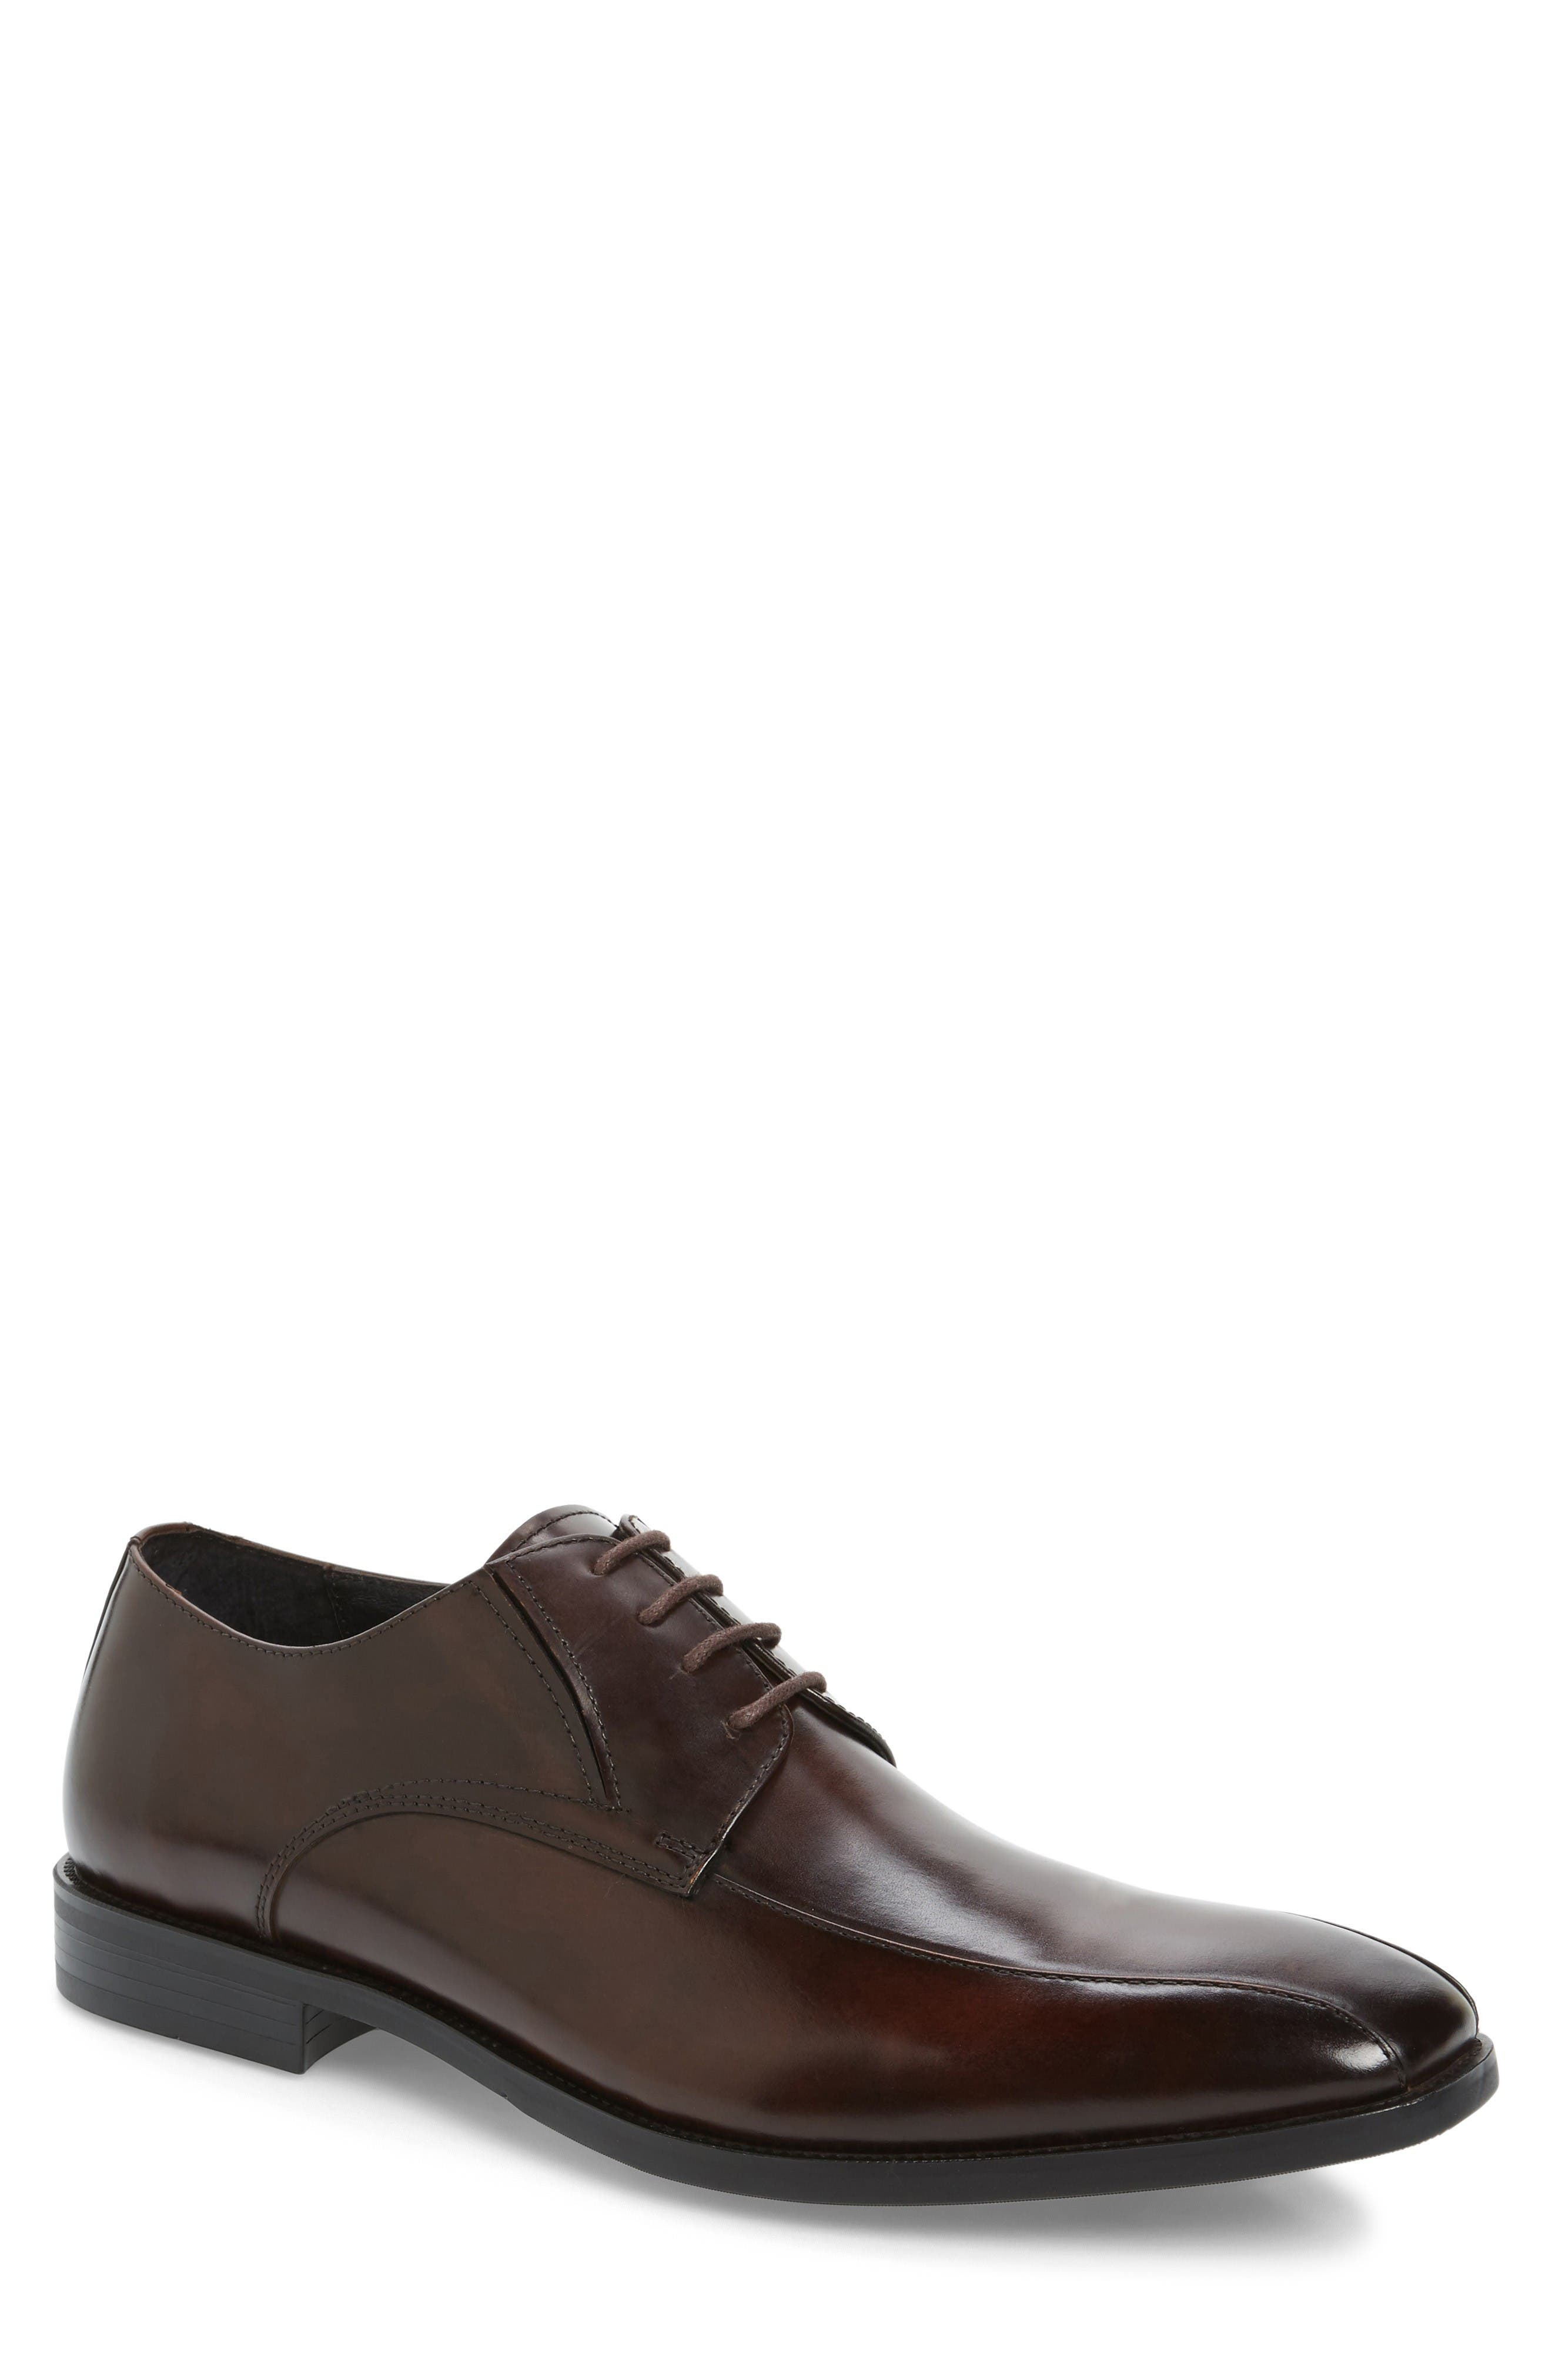 Alternate Image 1 Selected - Kenneth Cole New York Extra Ticket Bike Toe Derby (Men)